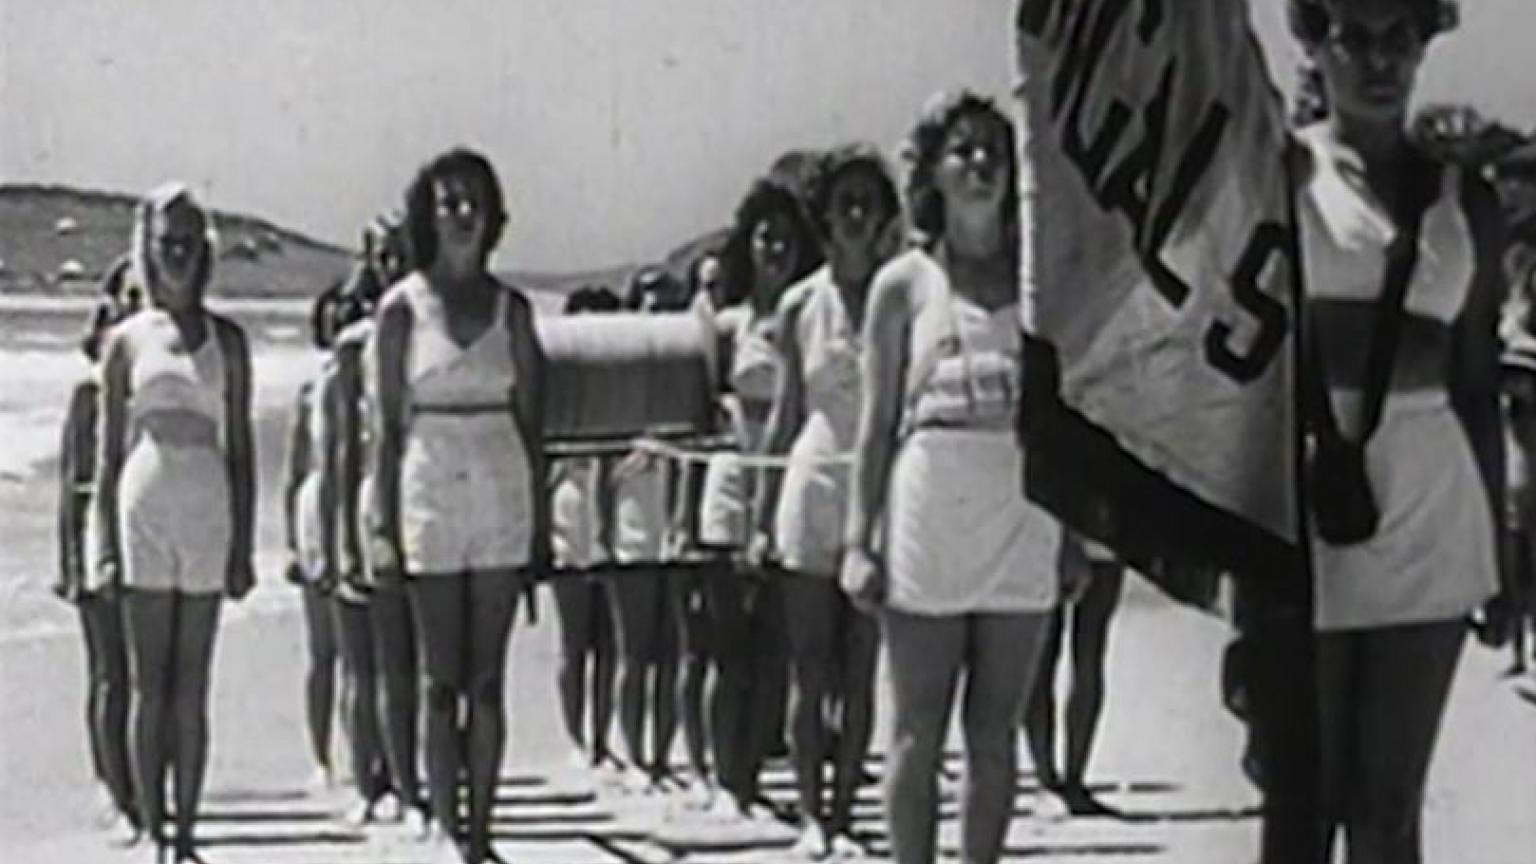 Female lifesavers from Terrigal Surf Life Saving Club participate in a march past